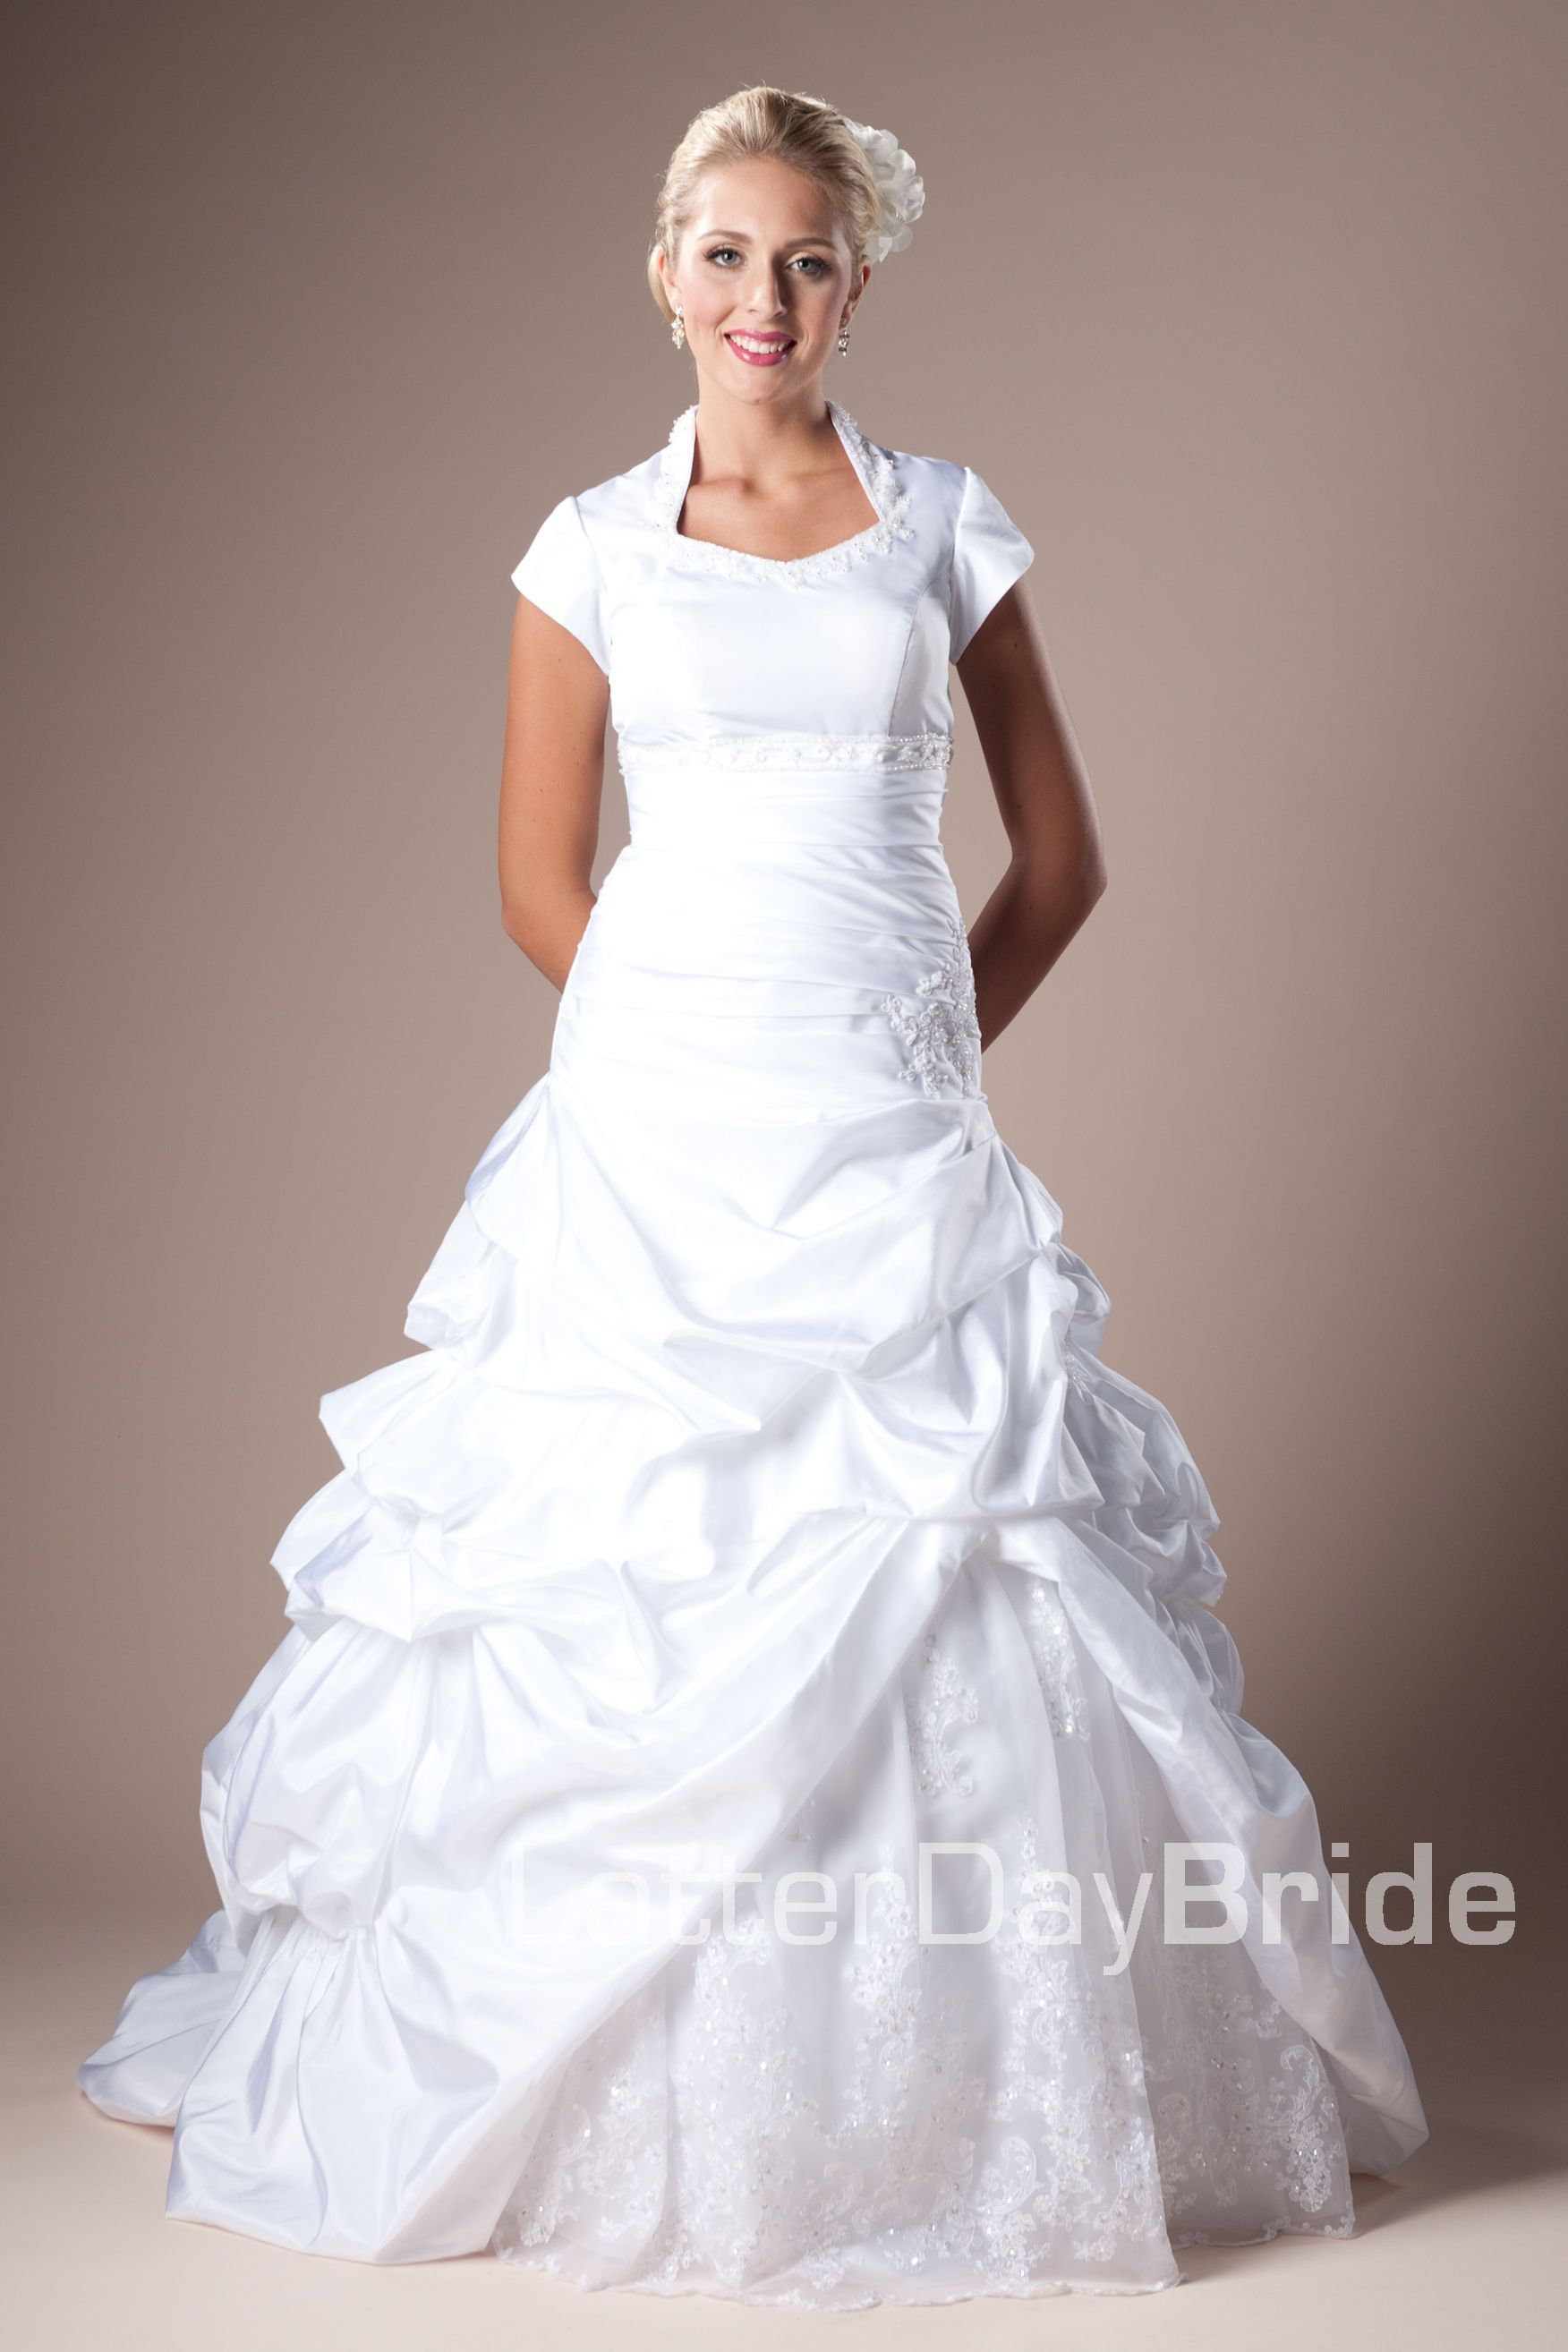 Modest Wedding Dress, Brighton | LatterDayBride & Prom. Modest ...